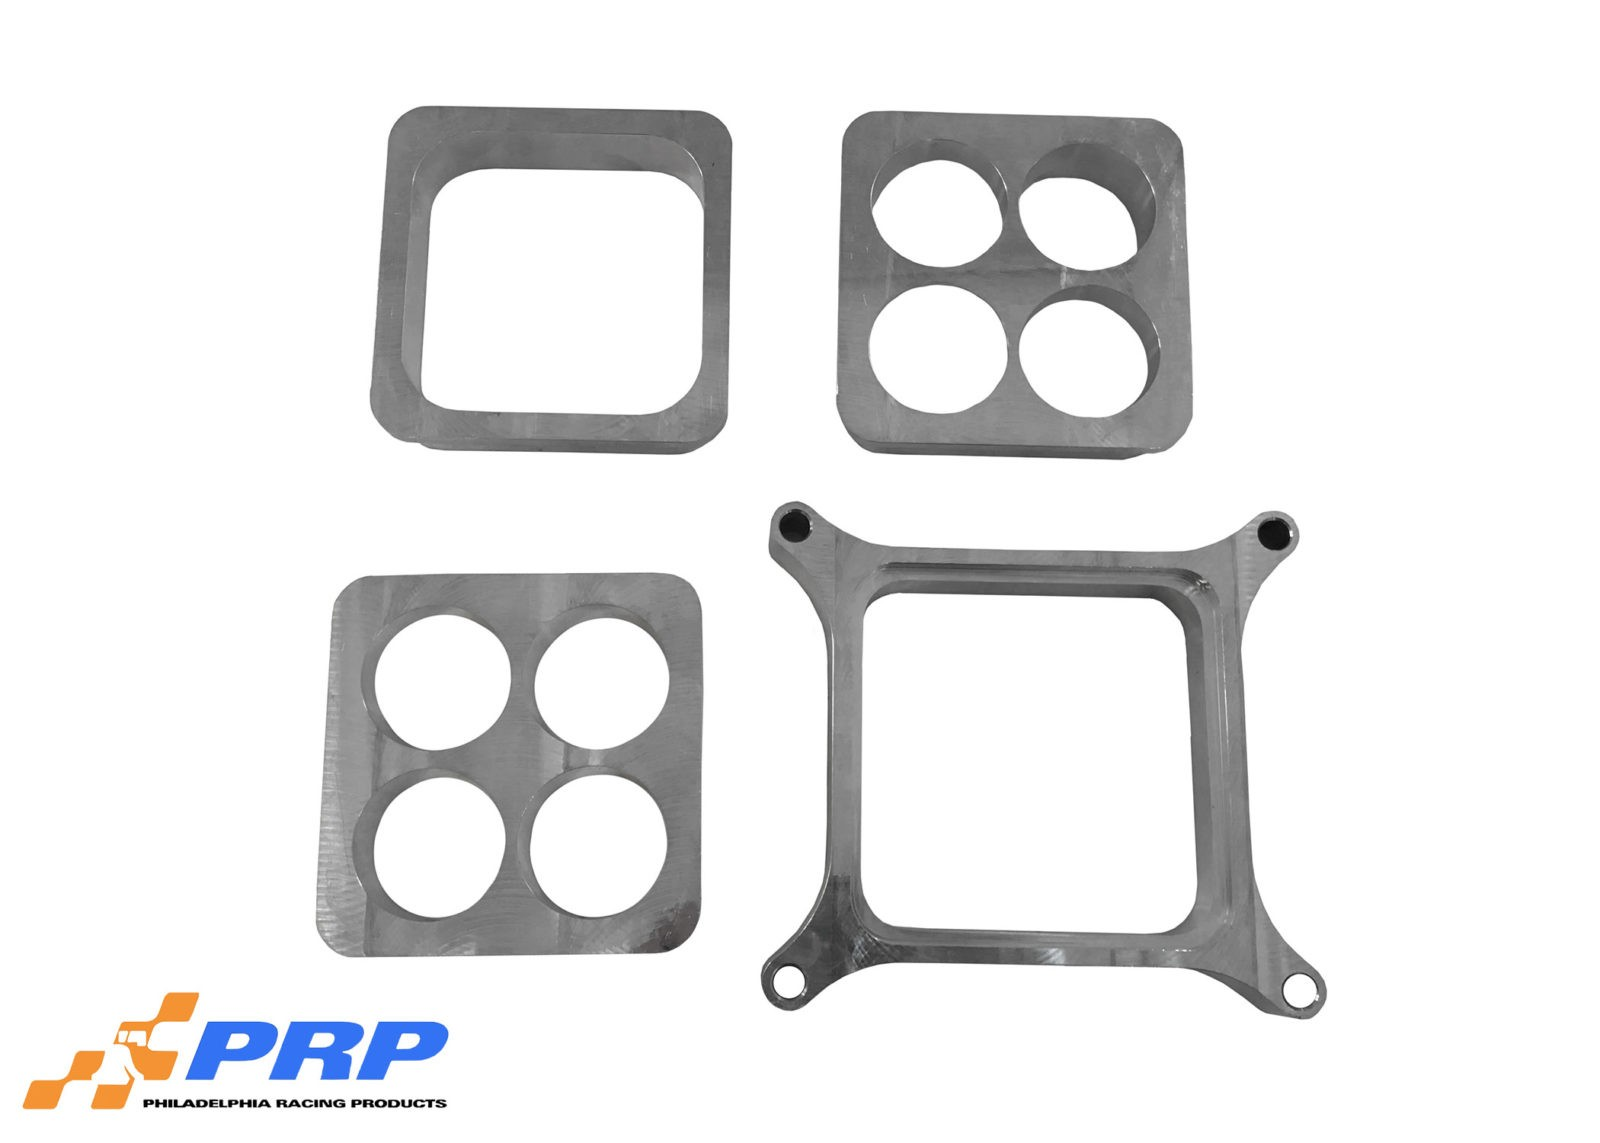 Drop In Carburetor Space Kit made by PRP Racing Products